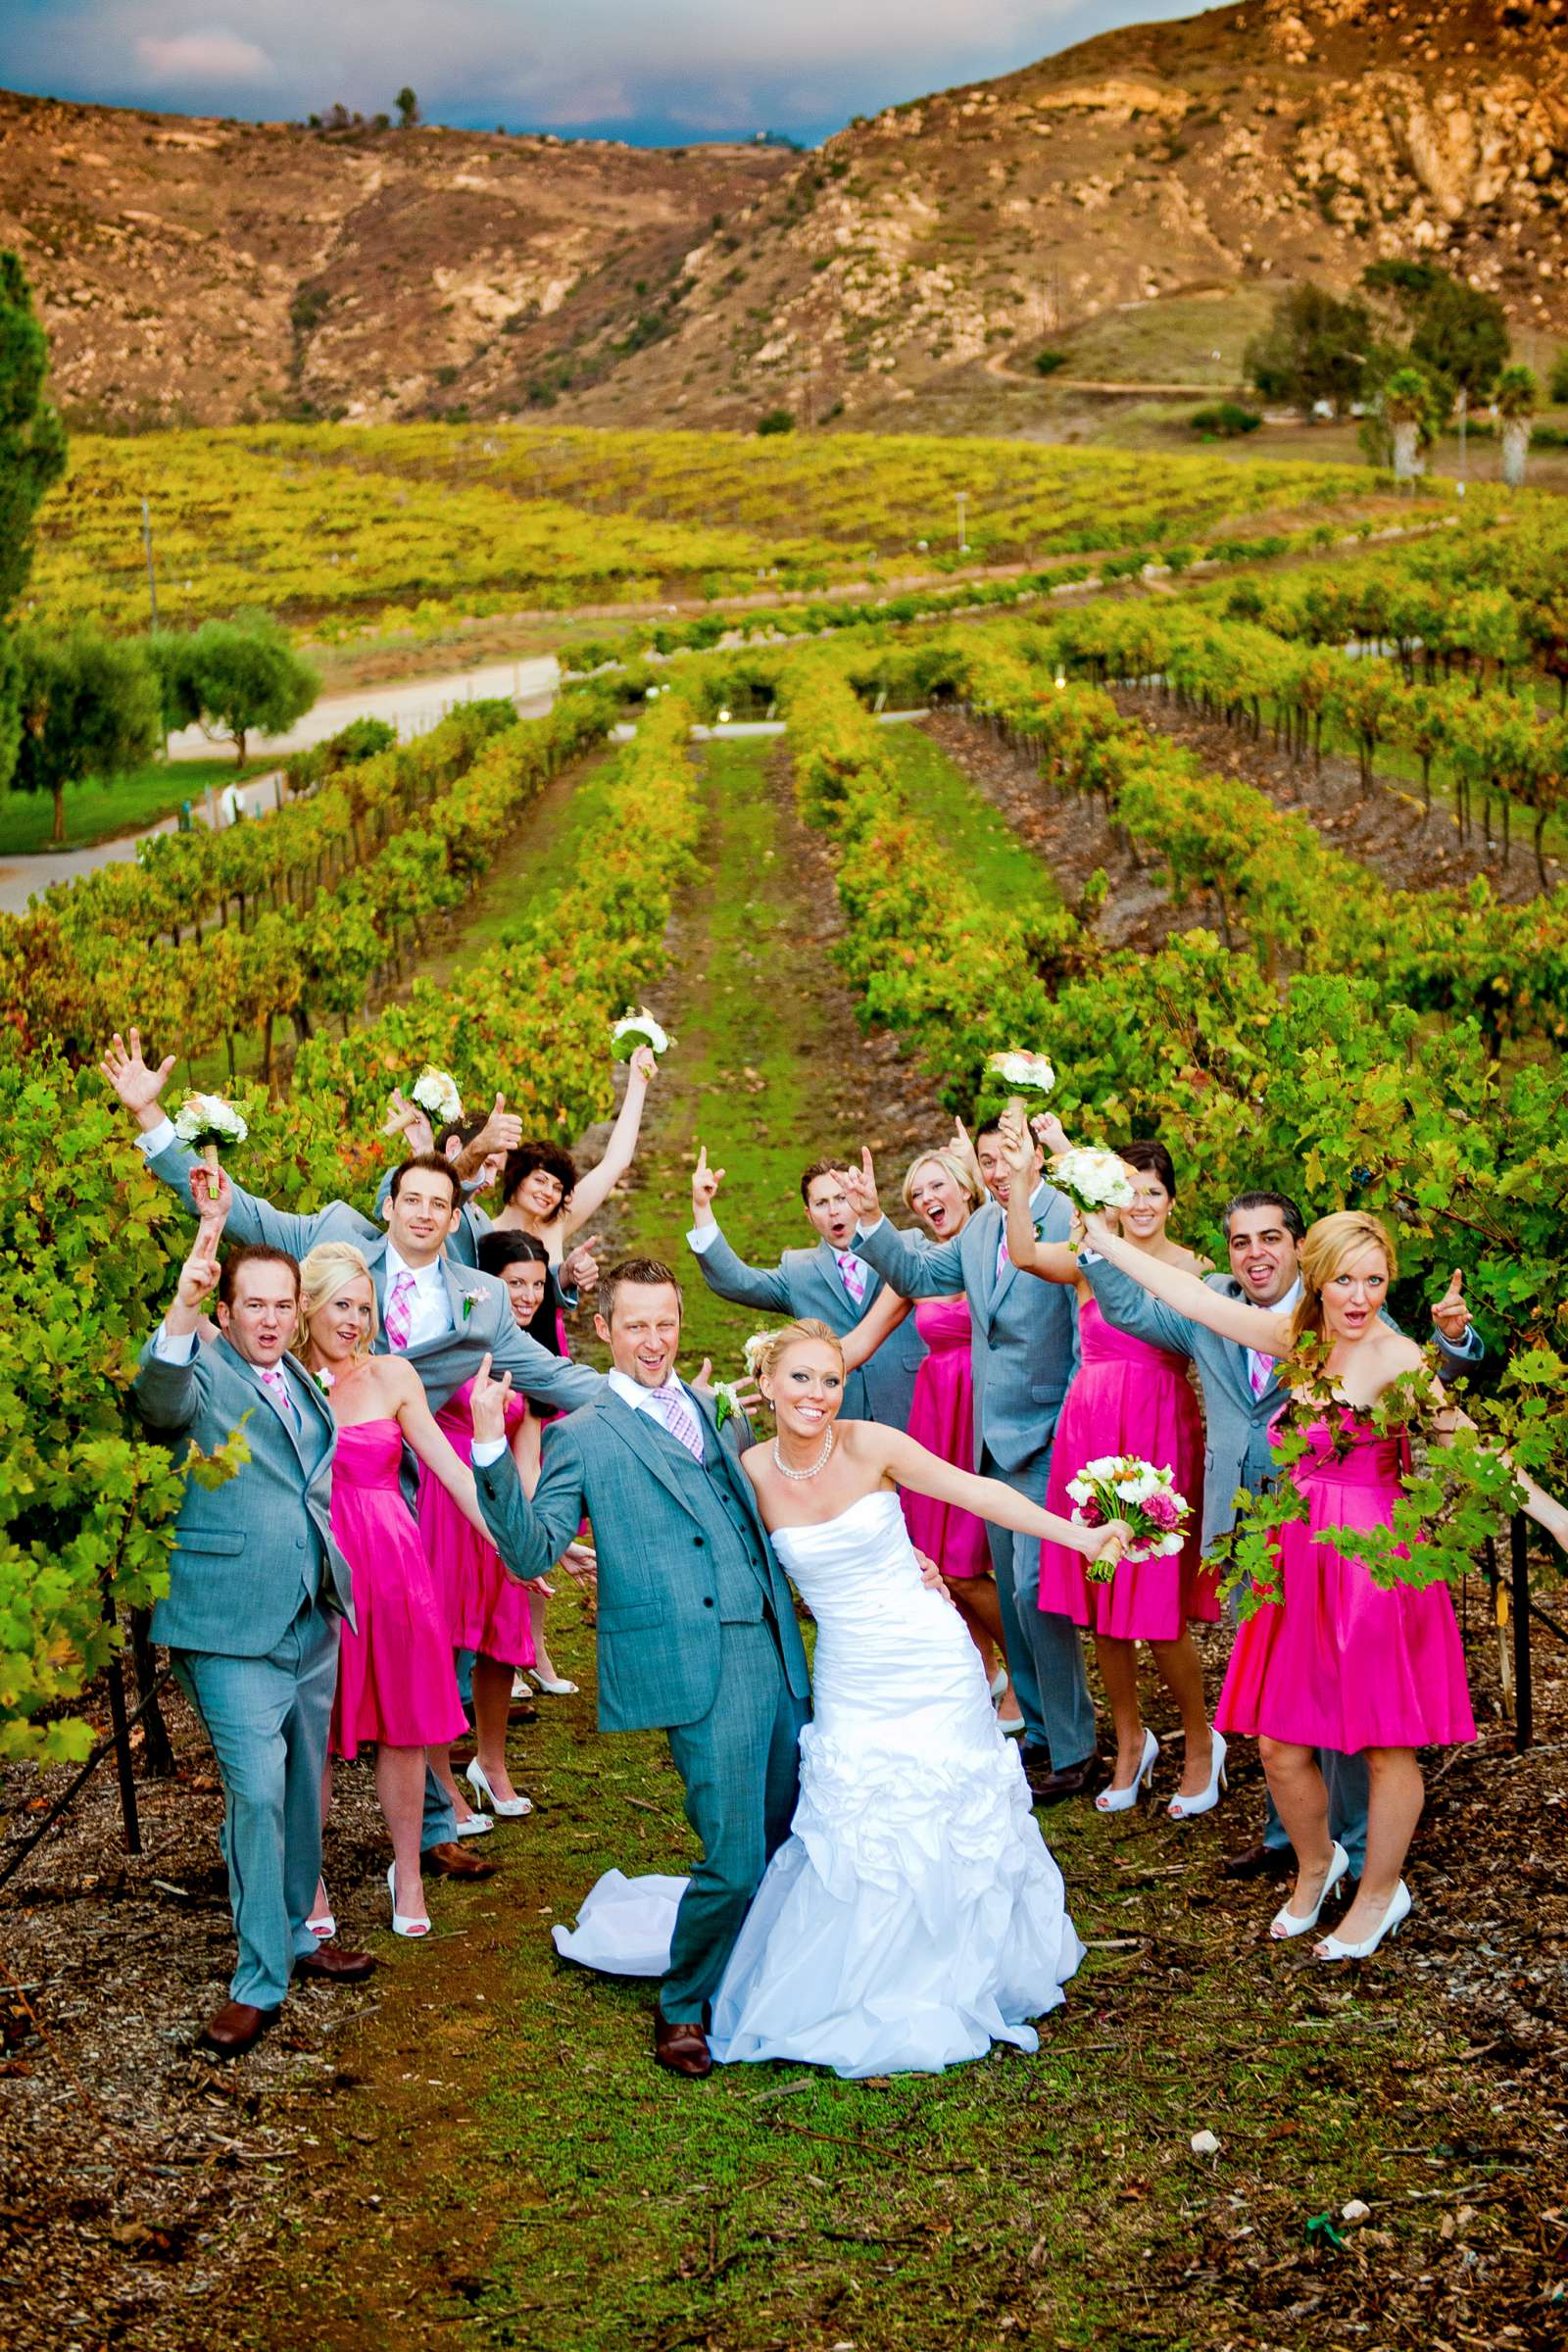 Orfila Vineyards Wedding, Mindy and Bryan Wedding Photo #30 by True Photography